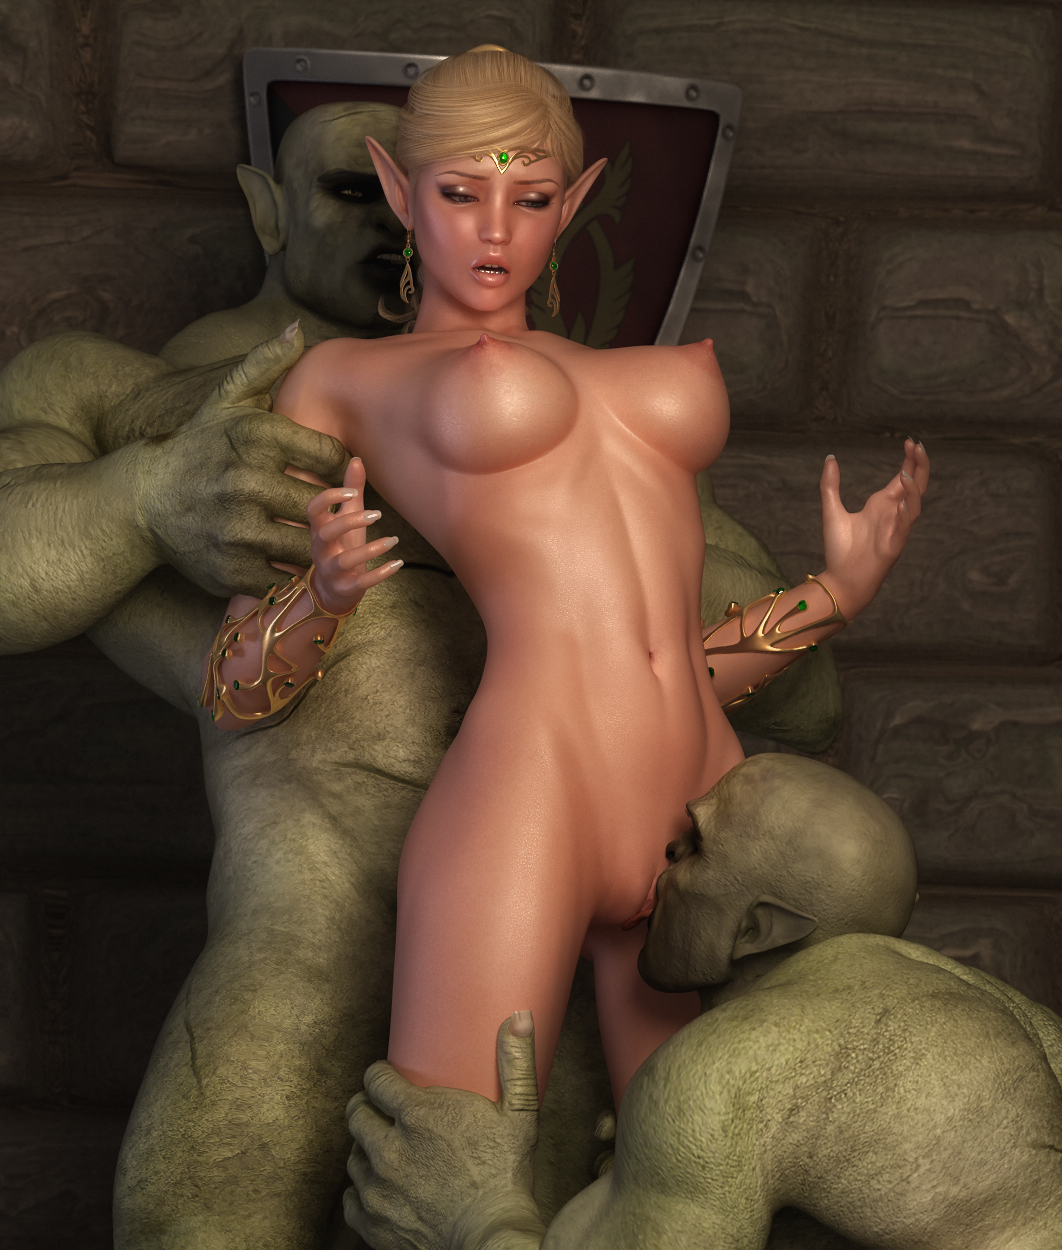 Elf girl gets fucked by dwarf porn  pornos movies